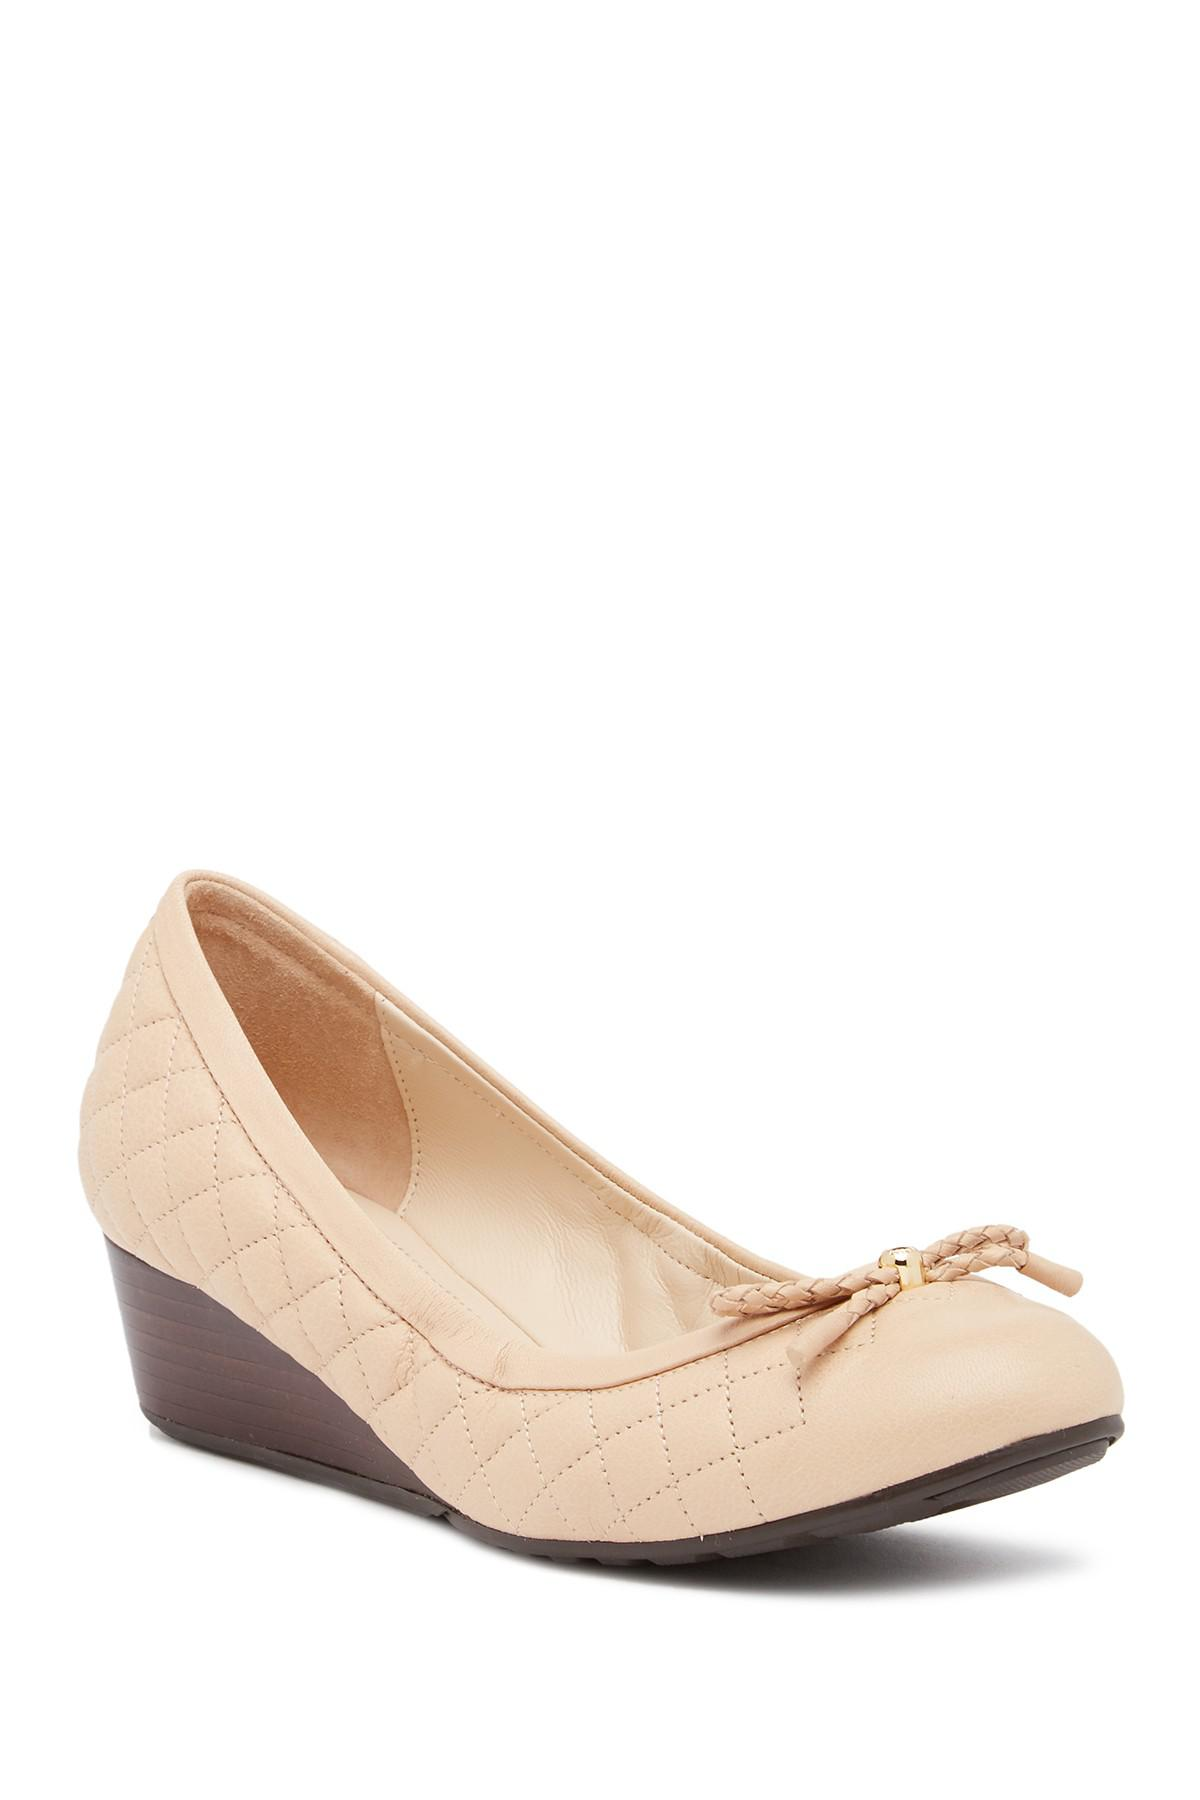 a4968b4e632 Cole Haan Tali Grand Quilted Wedge Pump in Natural - Lyst